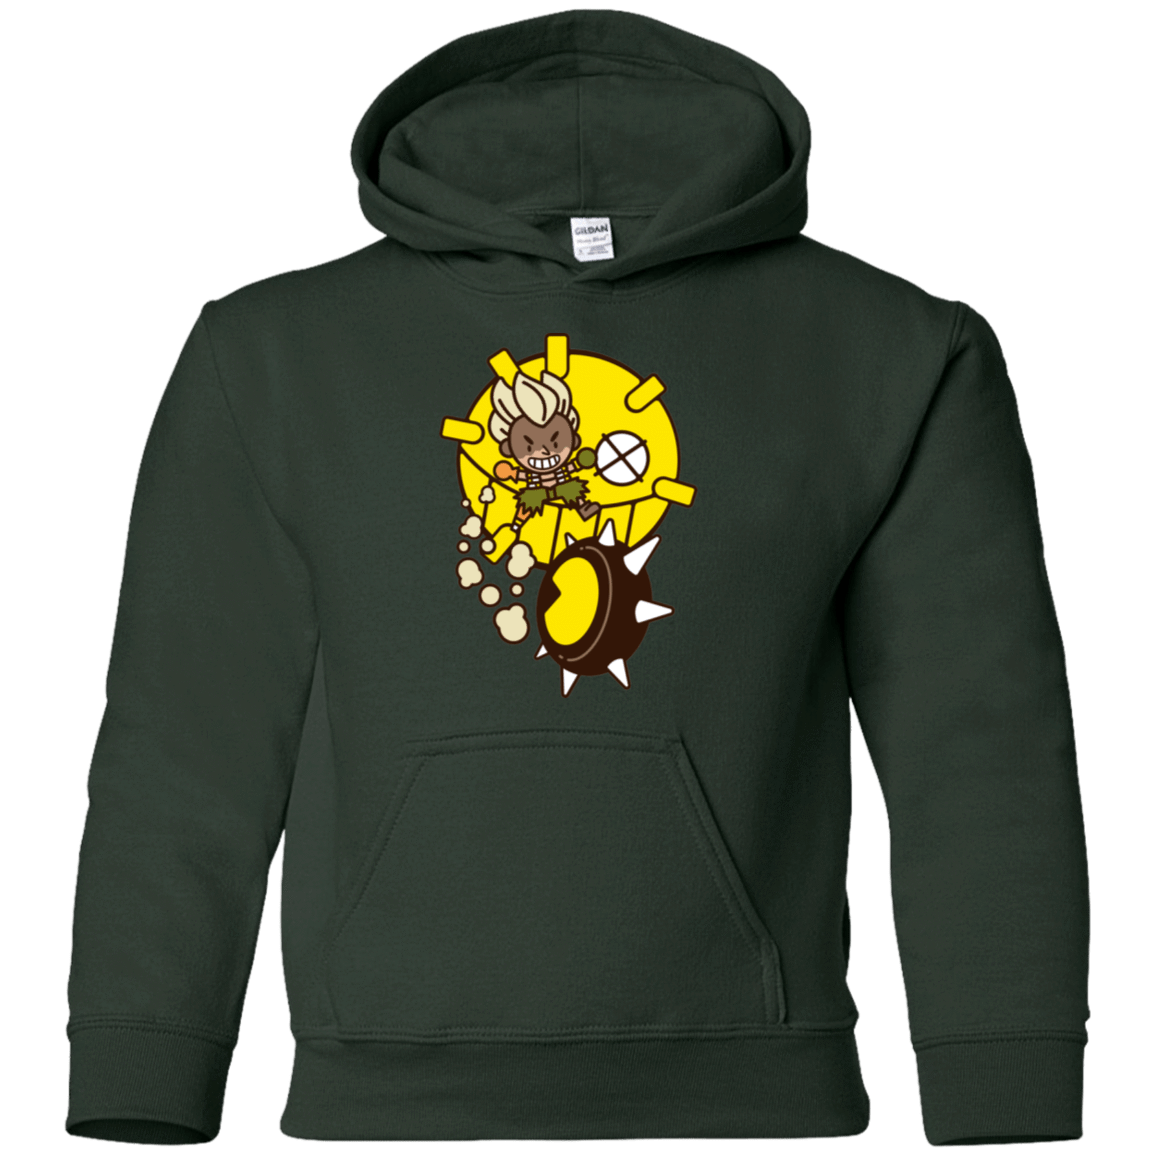 Sweatshirts Forest Green / YS Fire in the Hole Youth Hoodie